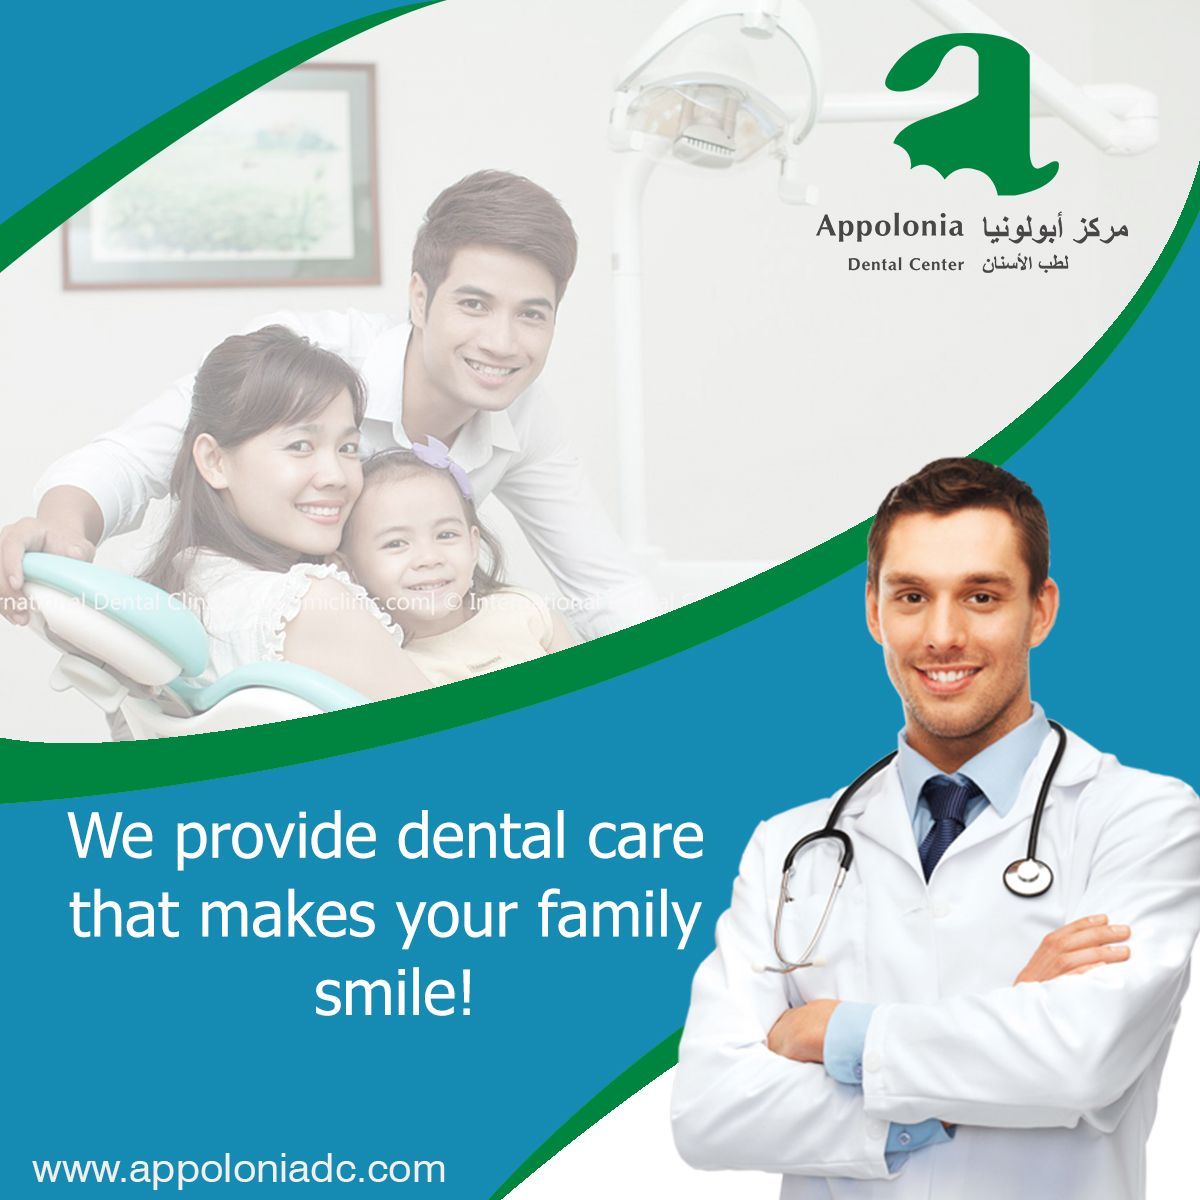 Ensure a wide smile for your family with top notch dental care and treatment at Appoloniadc!